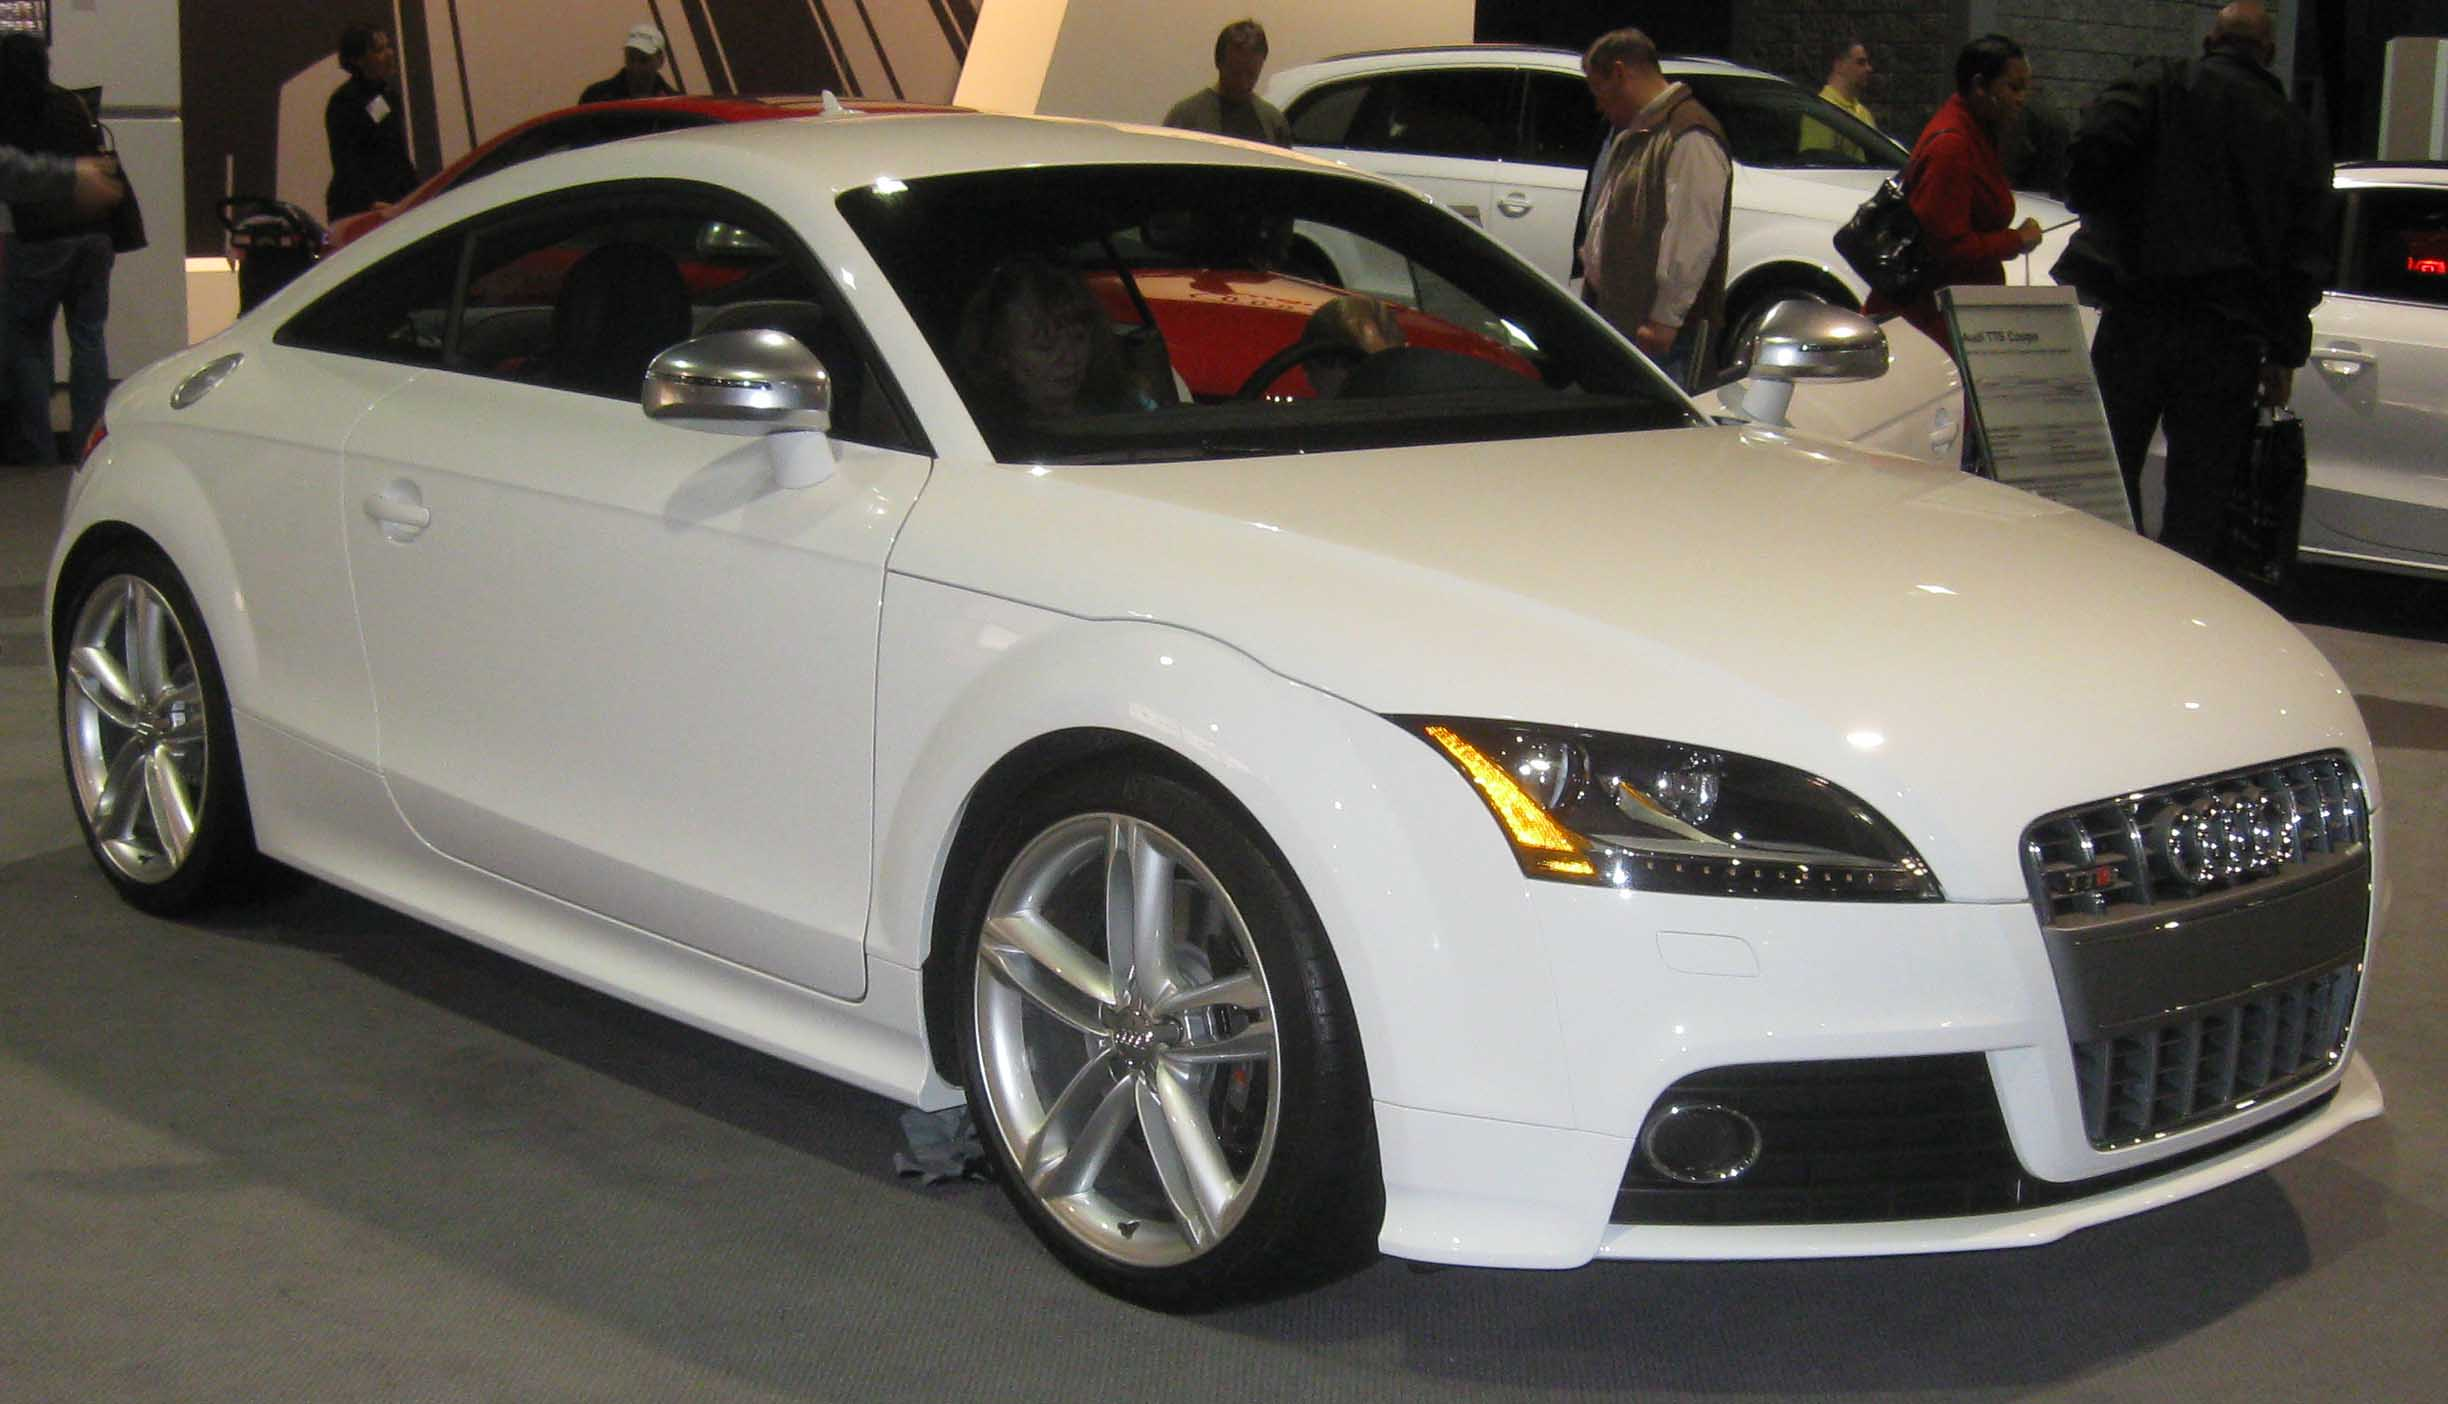 file 2009 audi tt s wikimedia commons. Black Bedroom Furniture Sets. Home Design Ideas